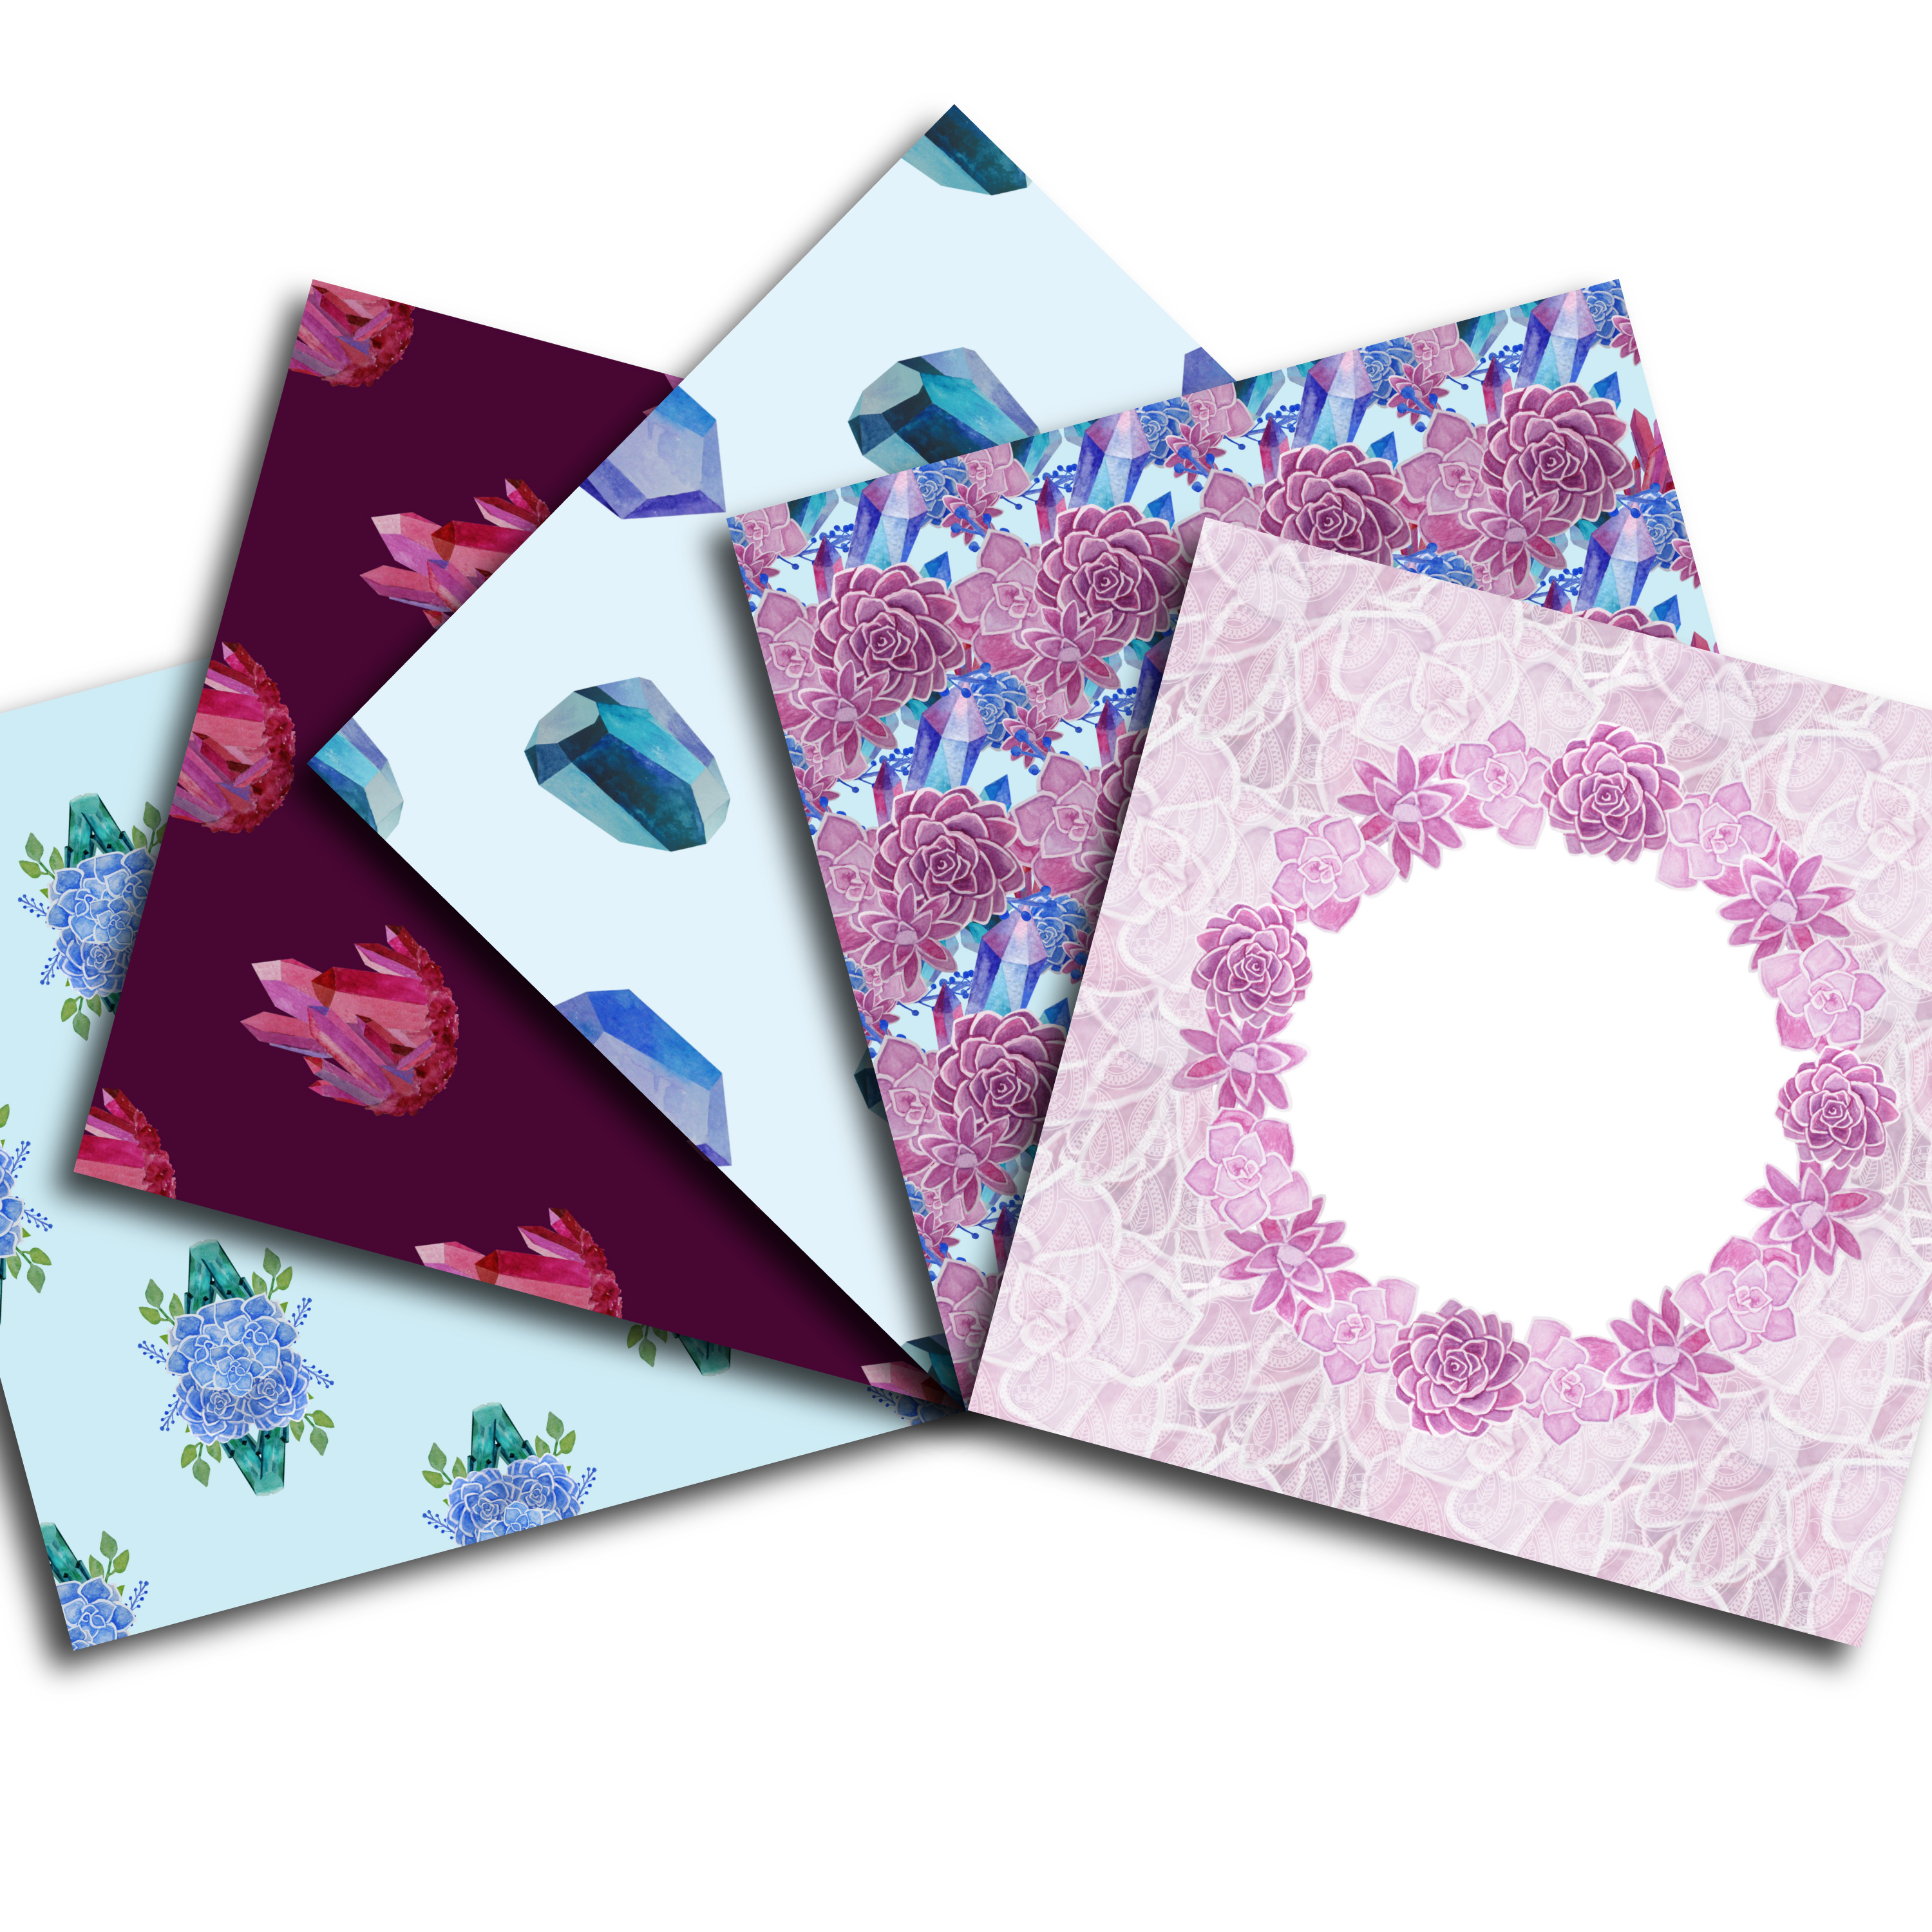 Succulents and Crystals Paper Pack example image 3